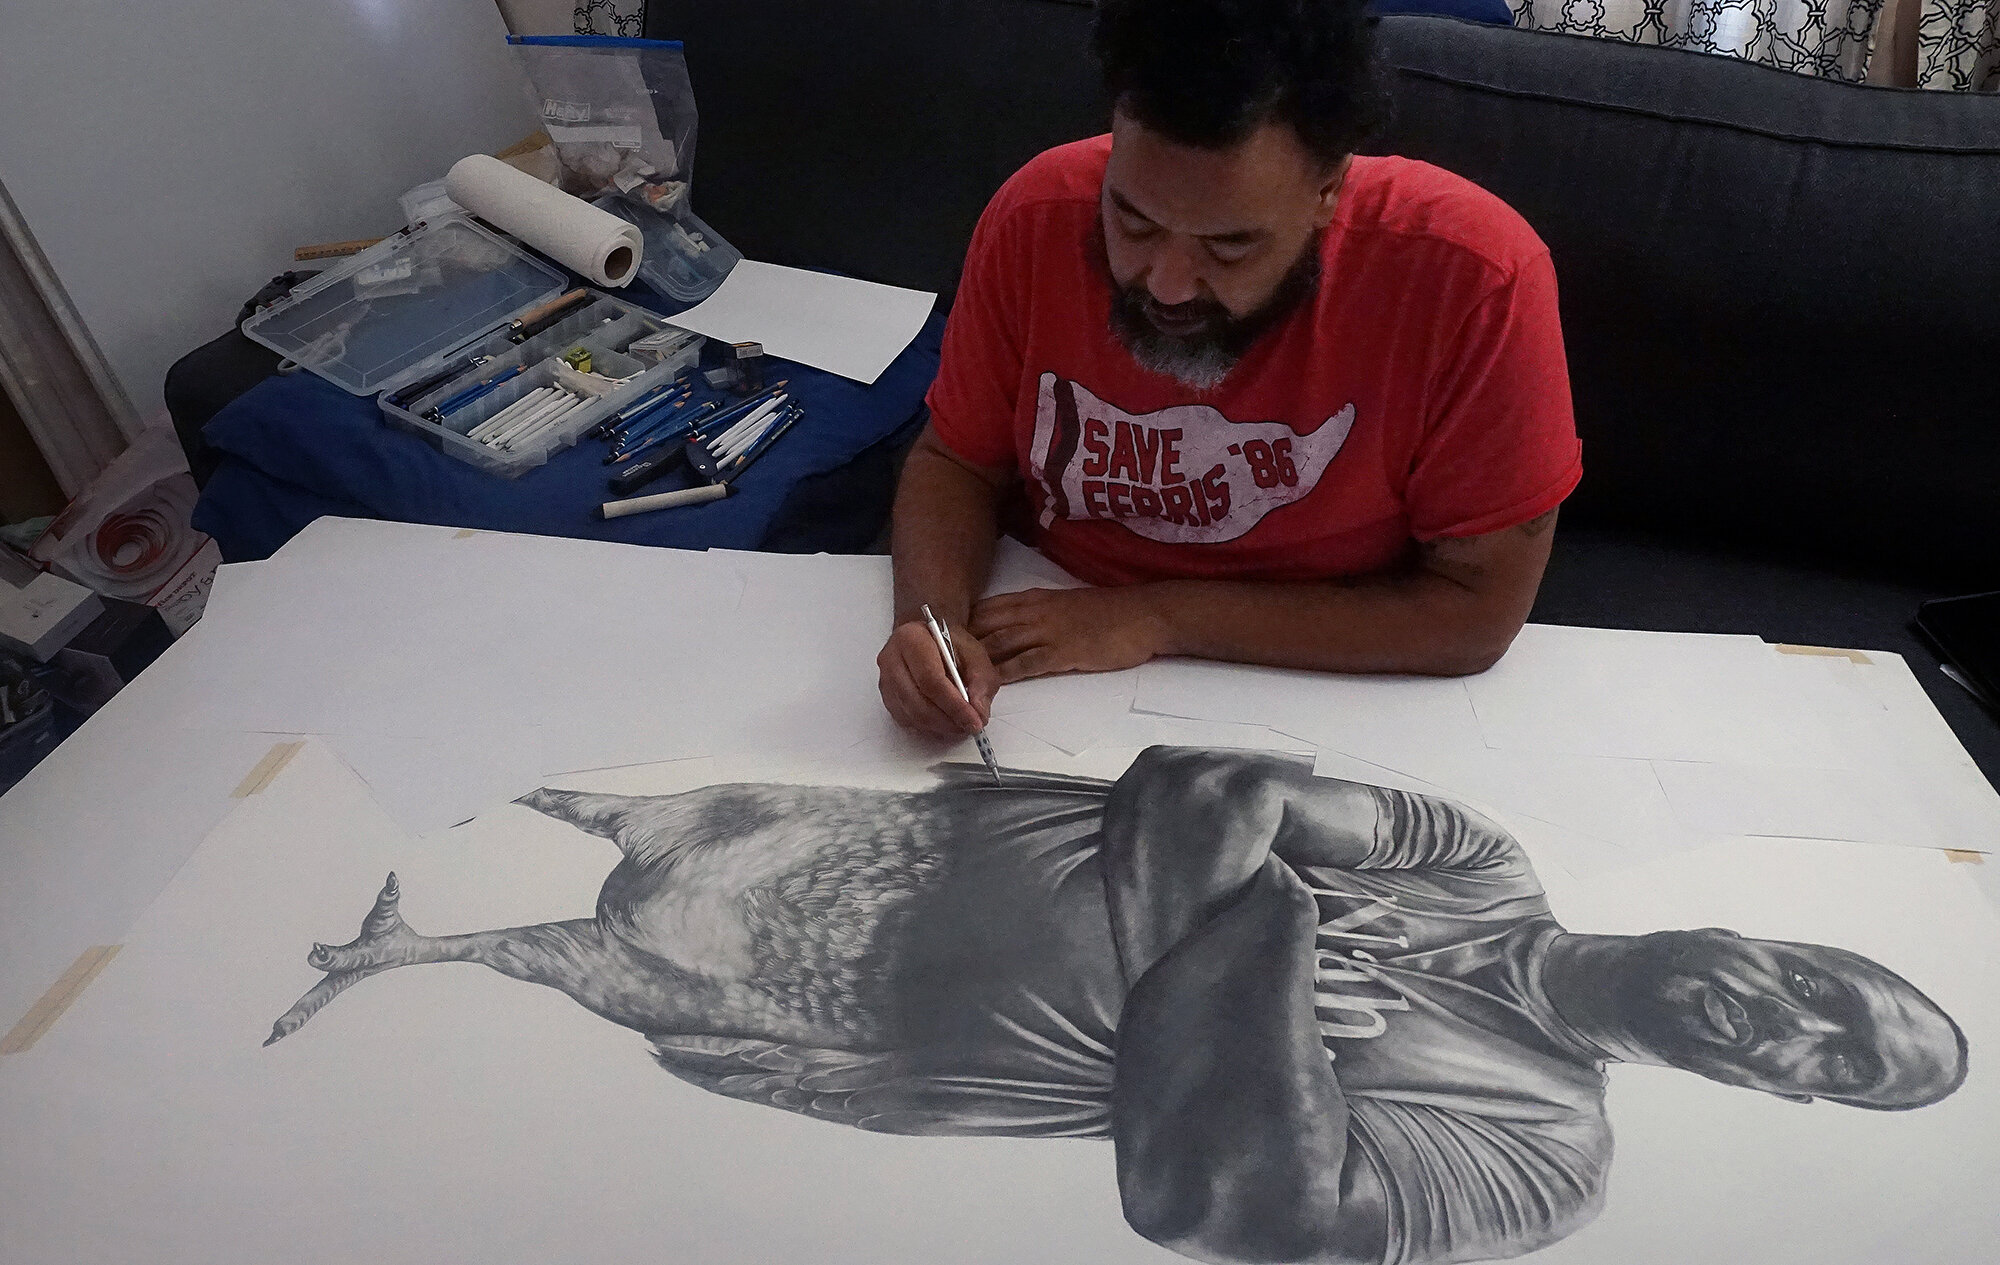 """Rashaun Rucker (pictured) is a Detroit-based multidisciplinary artist who will present new sculptural installations alongside selected works from his praised """"American Ornithology"""" series as part of a new exhibition at the University of Michigan Institute for the Humanities Gallery. Image courtesy: The artist."""